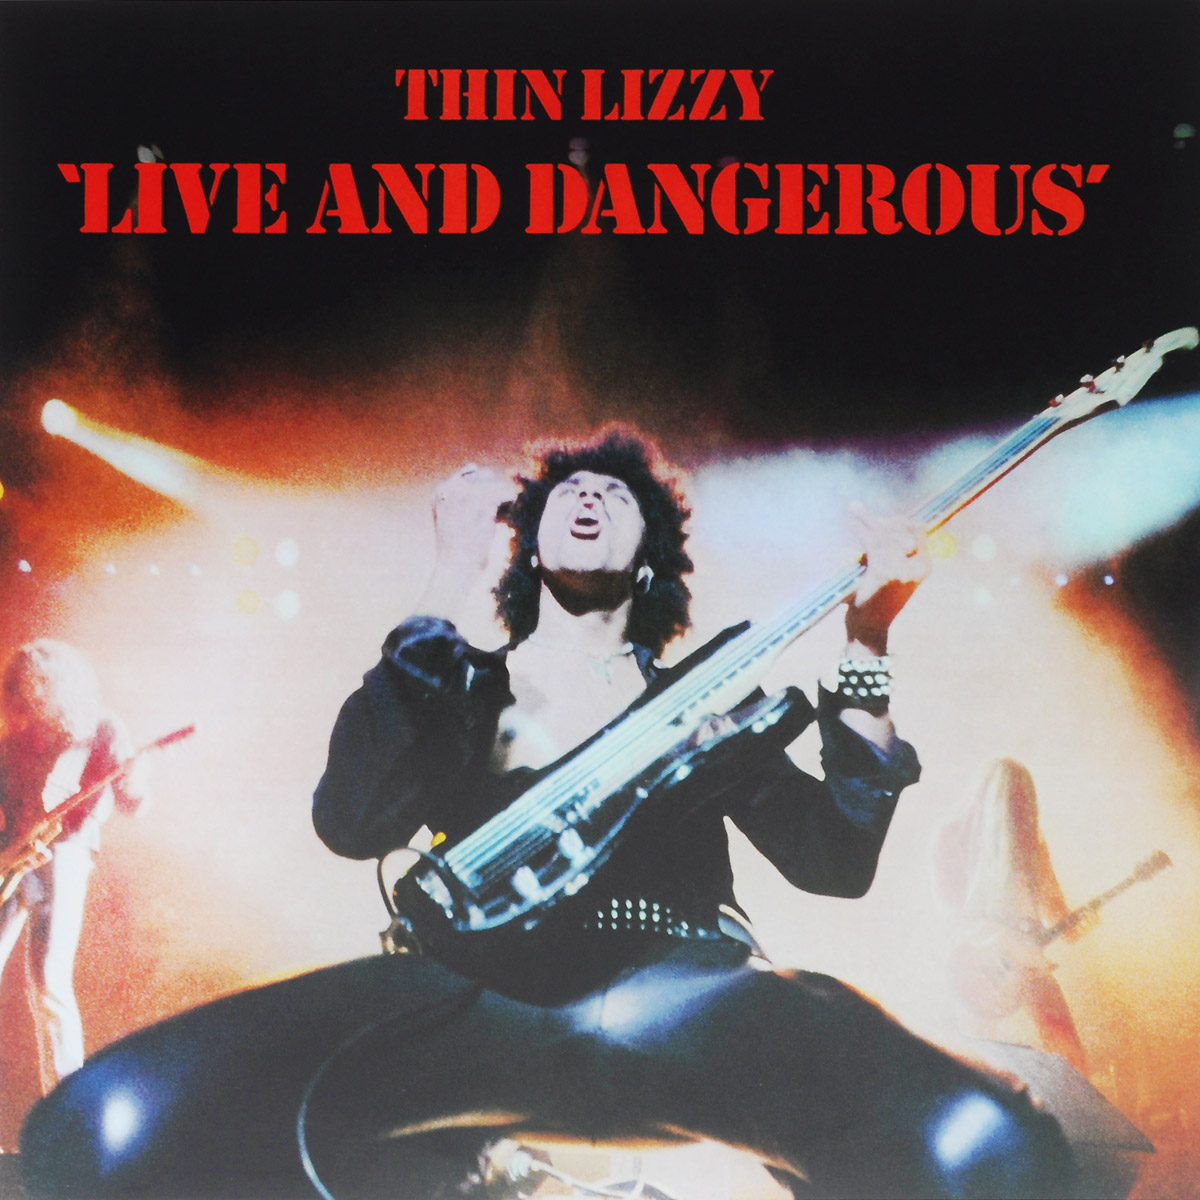 Thin Lizzy Thin Lizzy. Live And Dangerous (2 LP) thin lizzy thin lizzy jailbreak deluxe expanded edition 2 cd